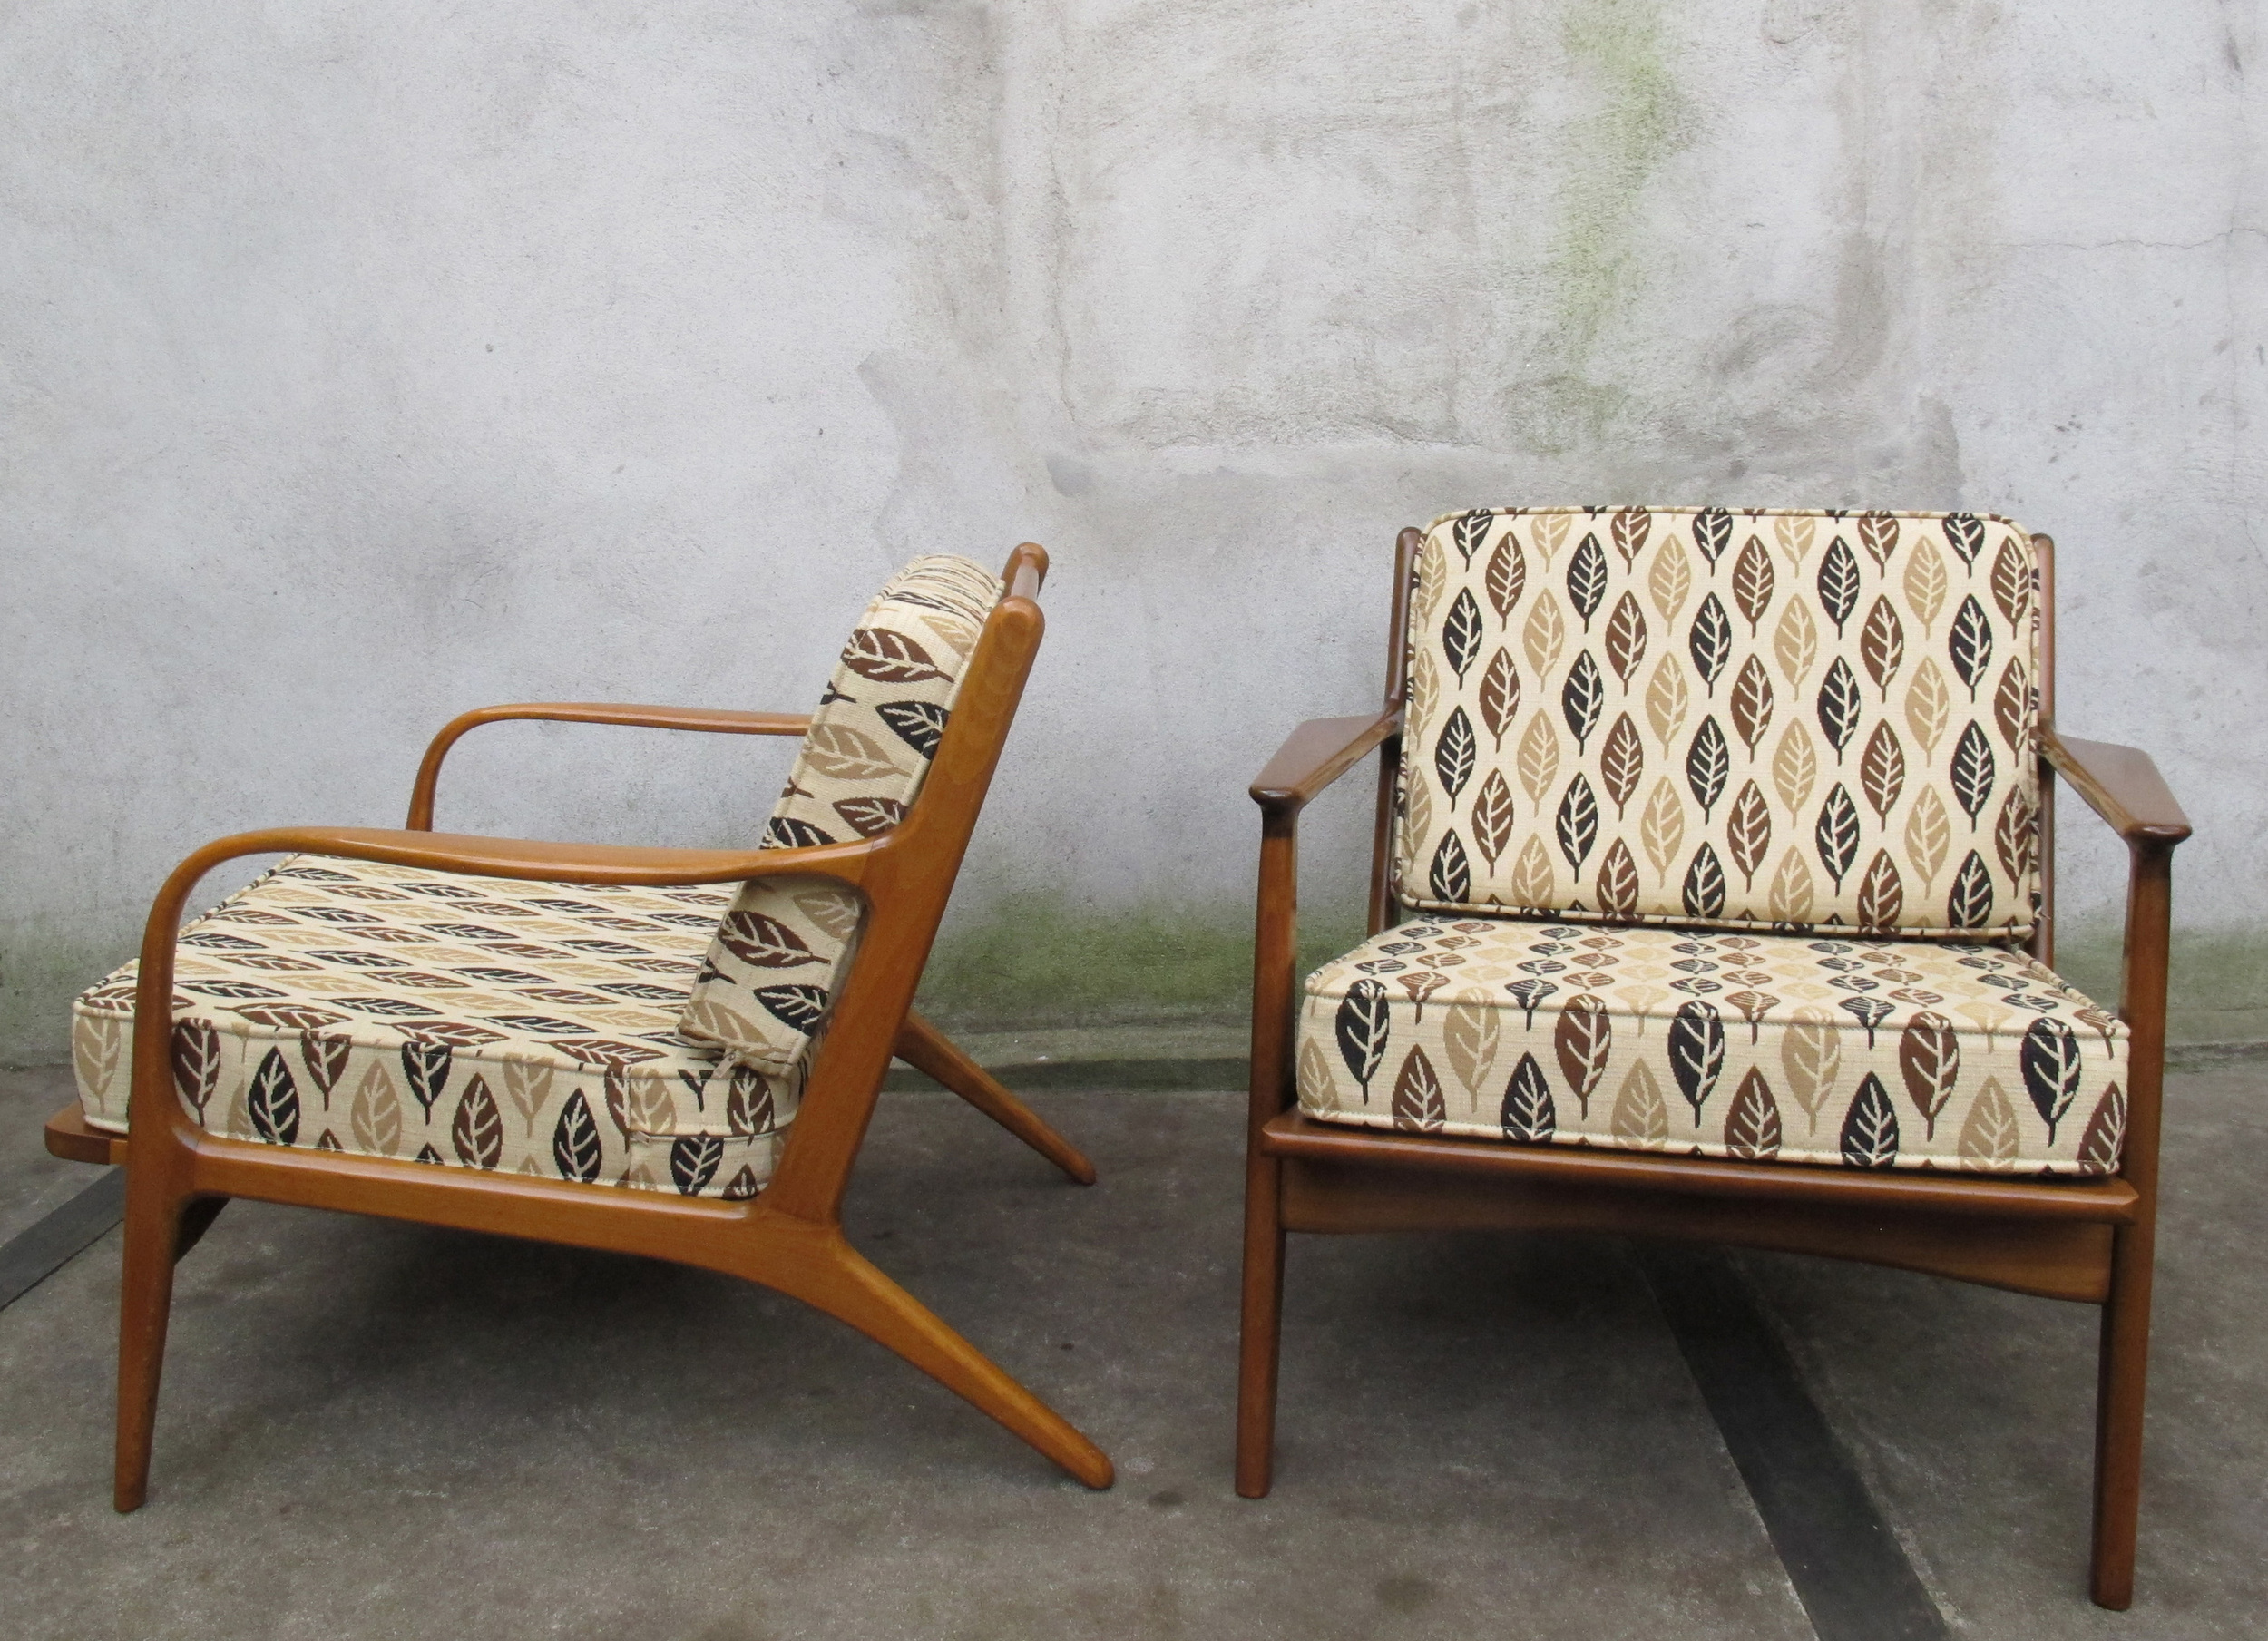 PAIR OF DANISH MODERN SCULPTED SPINDLE BACK LOUNGE CHAIRS